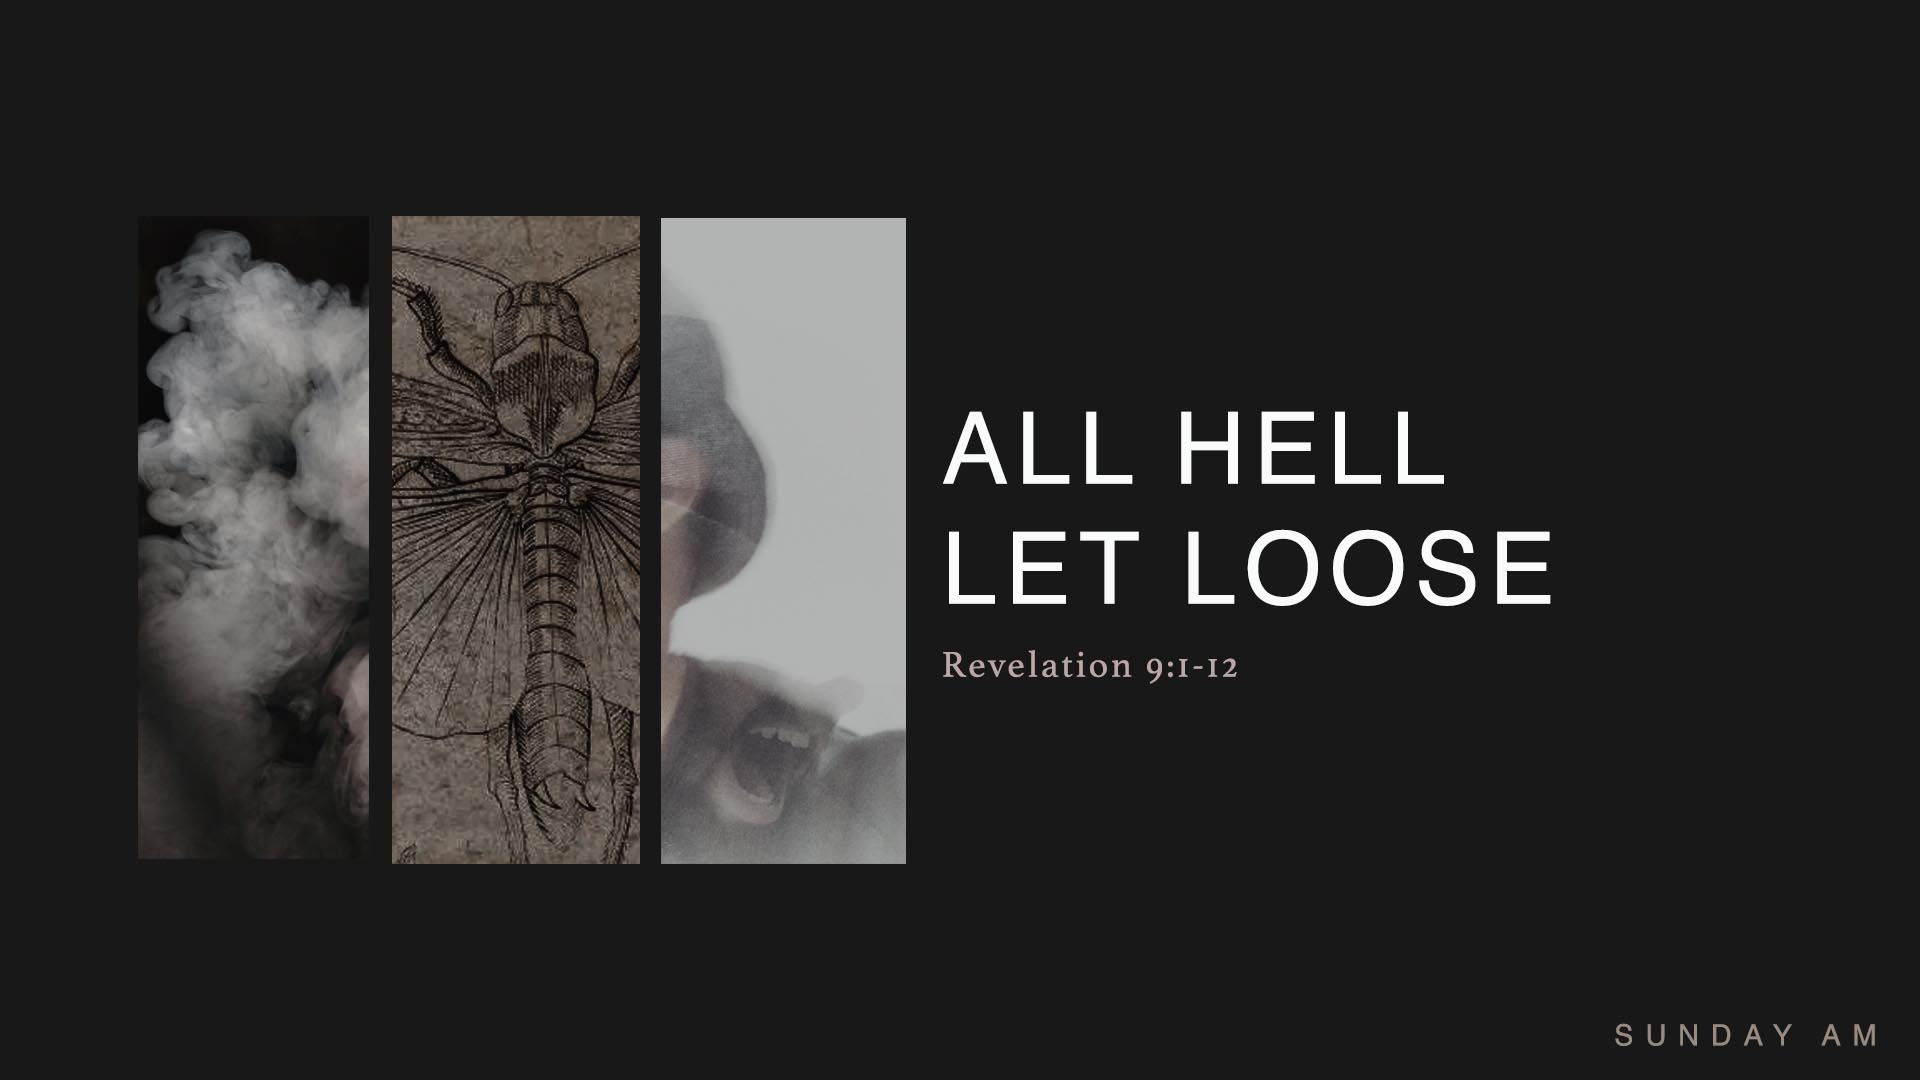 All Hell Let Loose - Revelation 9:1-12